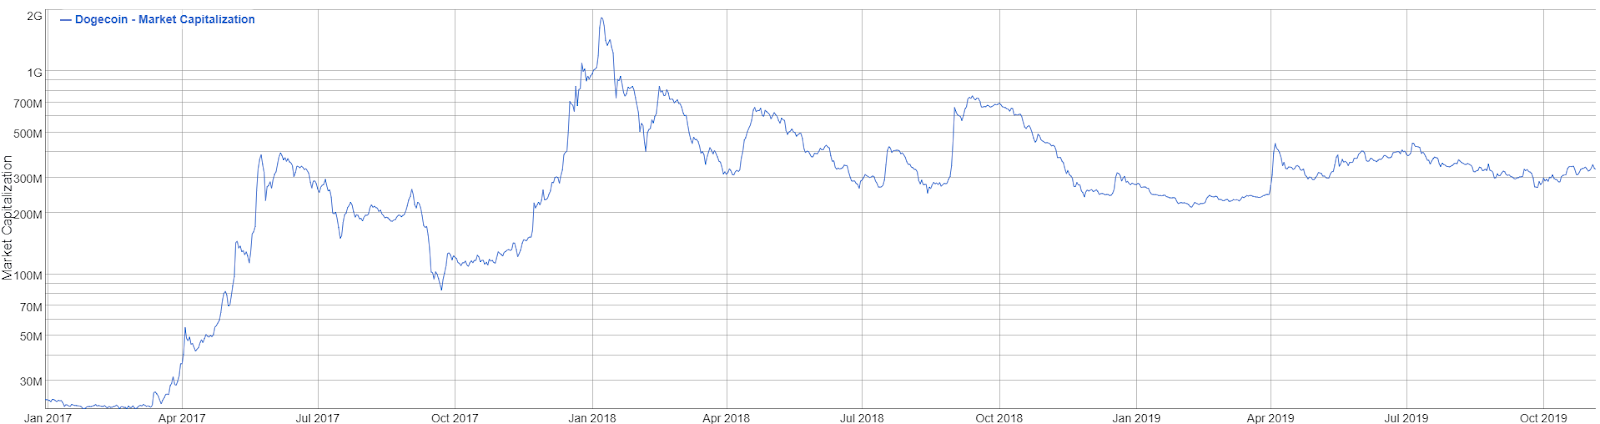 dogecoin cryptocurrency price chart